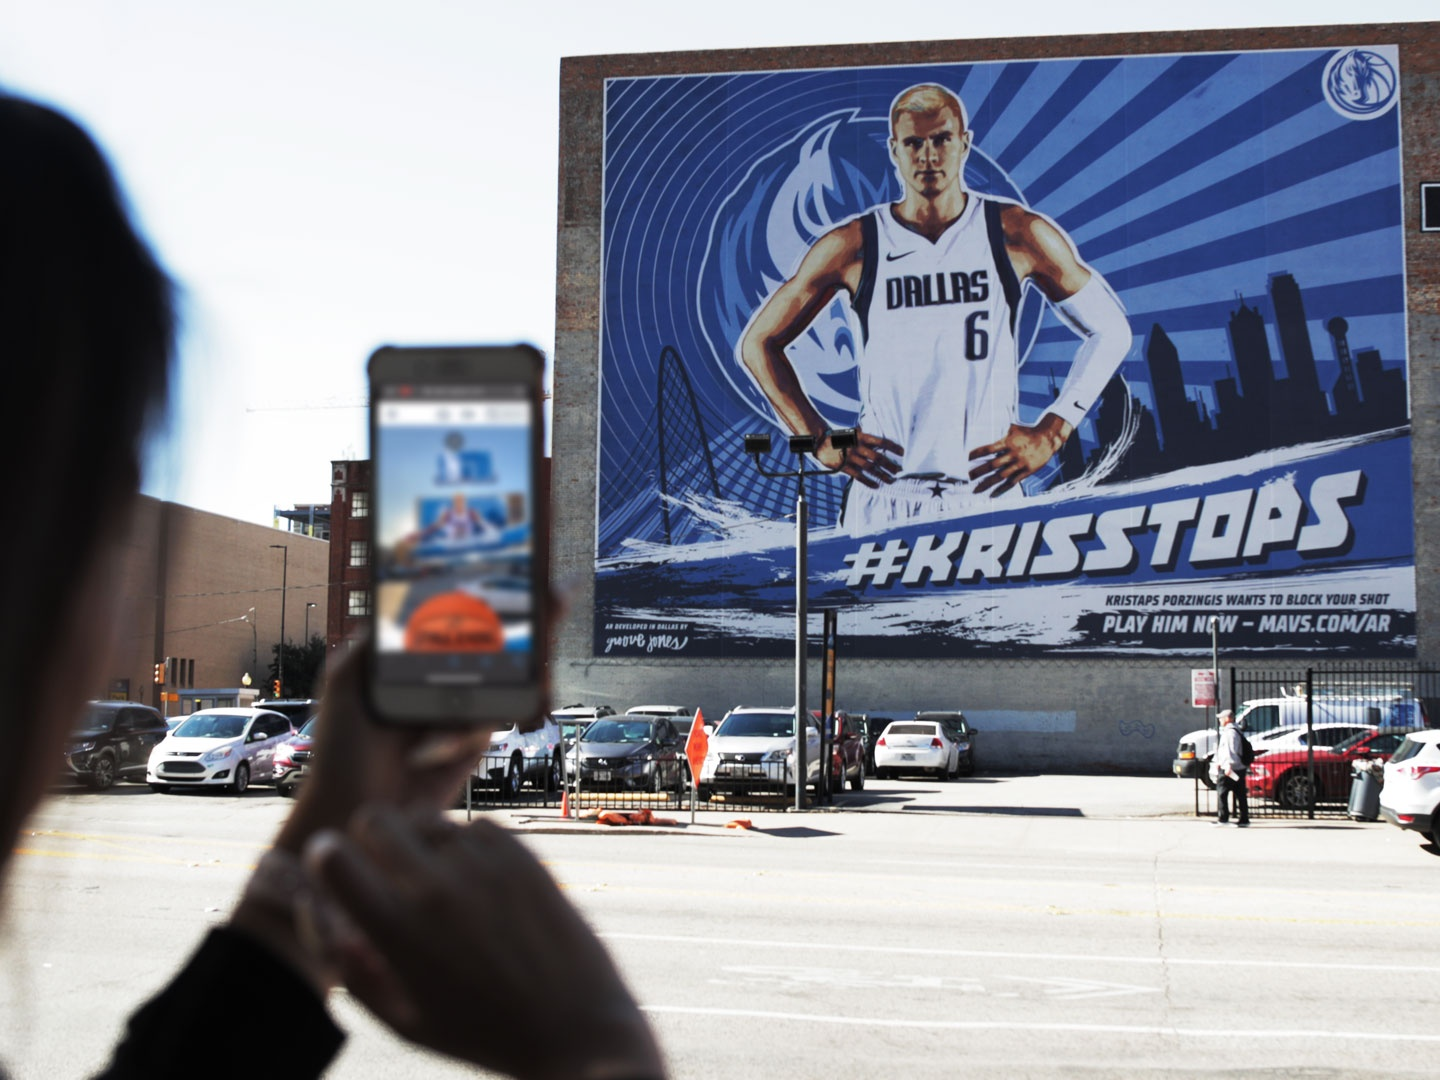 Dallas Mavericks - #KRISSTOPS Thumbnail